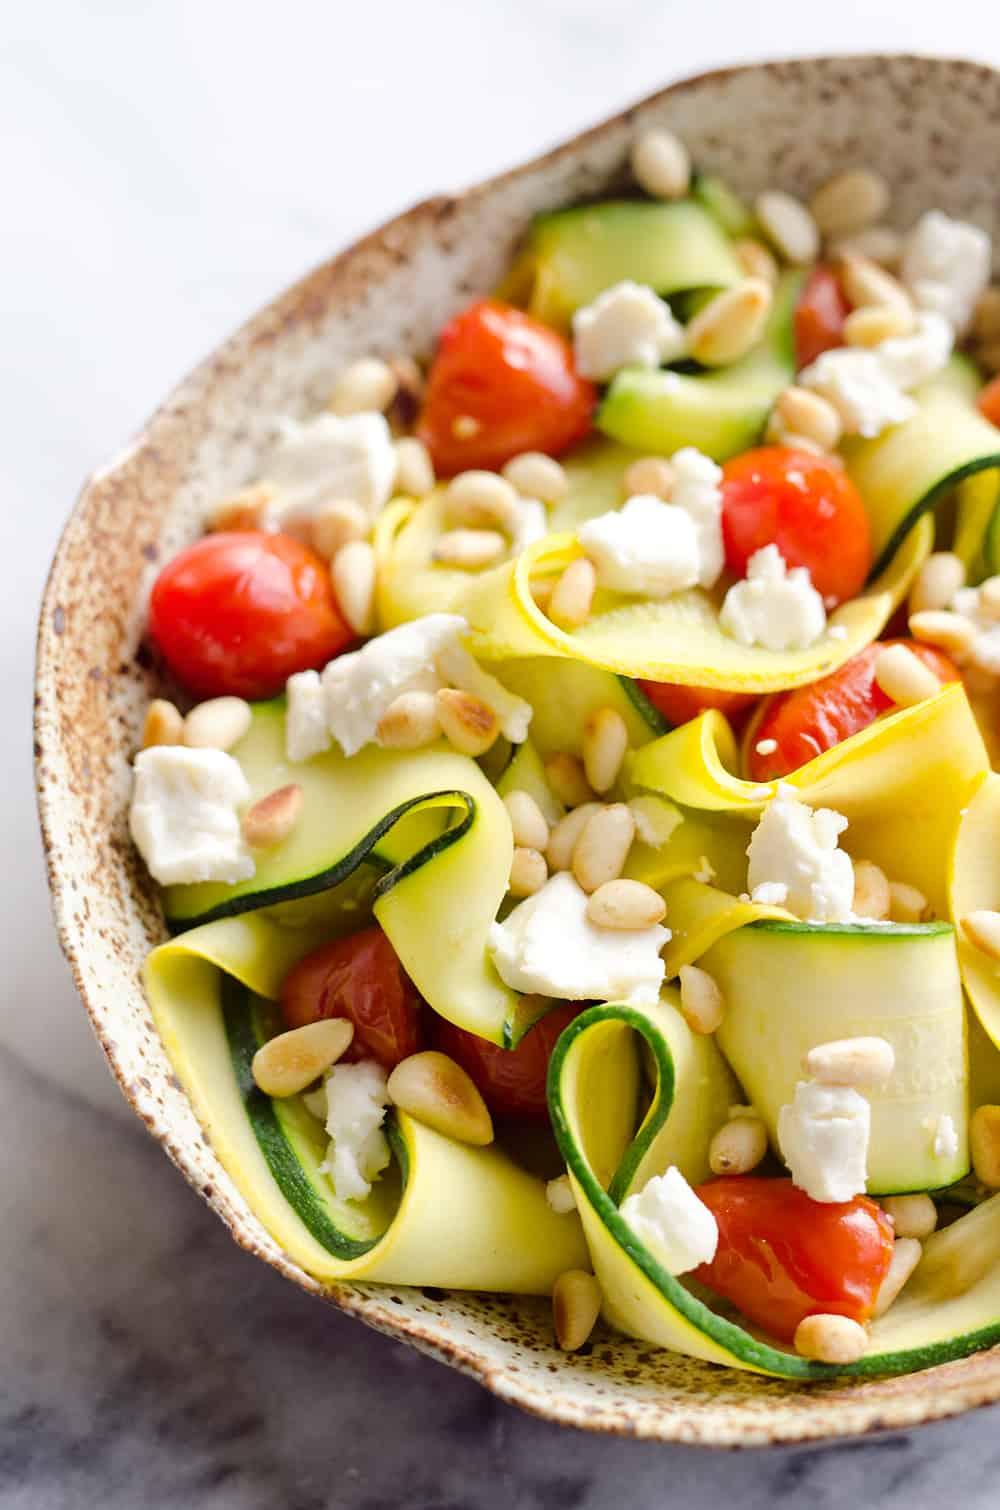 Ribboned Squash & Zucchini Salad is a fresh and healthy vegetarian salad with light veggies, toasted pine nuts, creamy goat cheese and balsamic glaze. Pair it with some grilled shrimp or chicken for an amazing and flavorful dinner you won't forget!